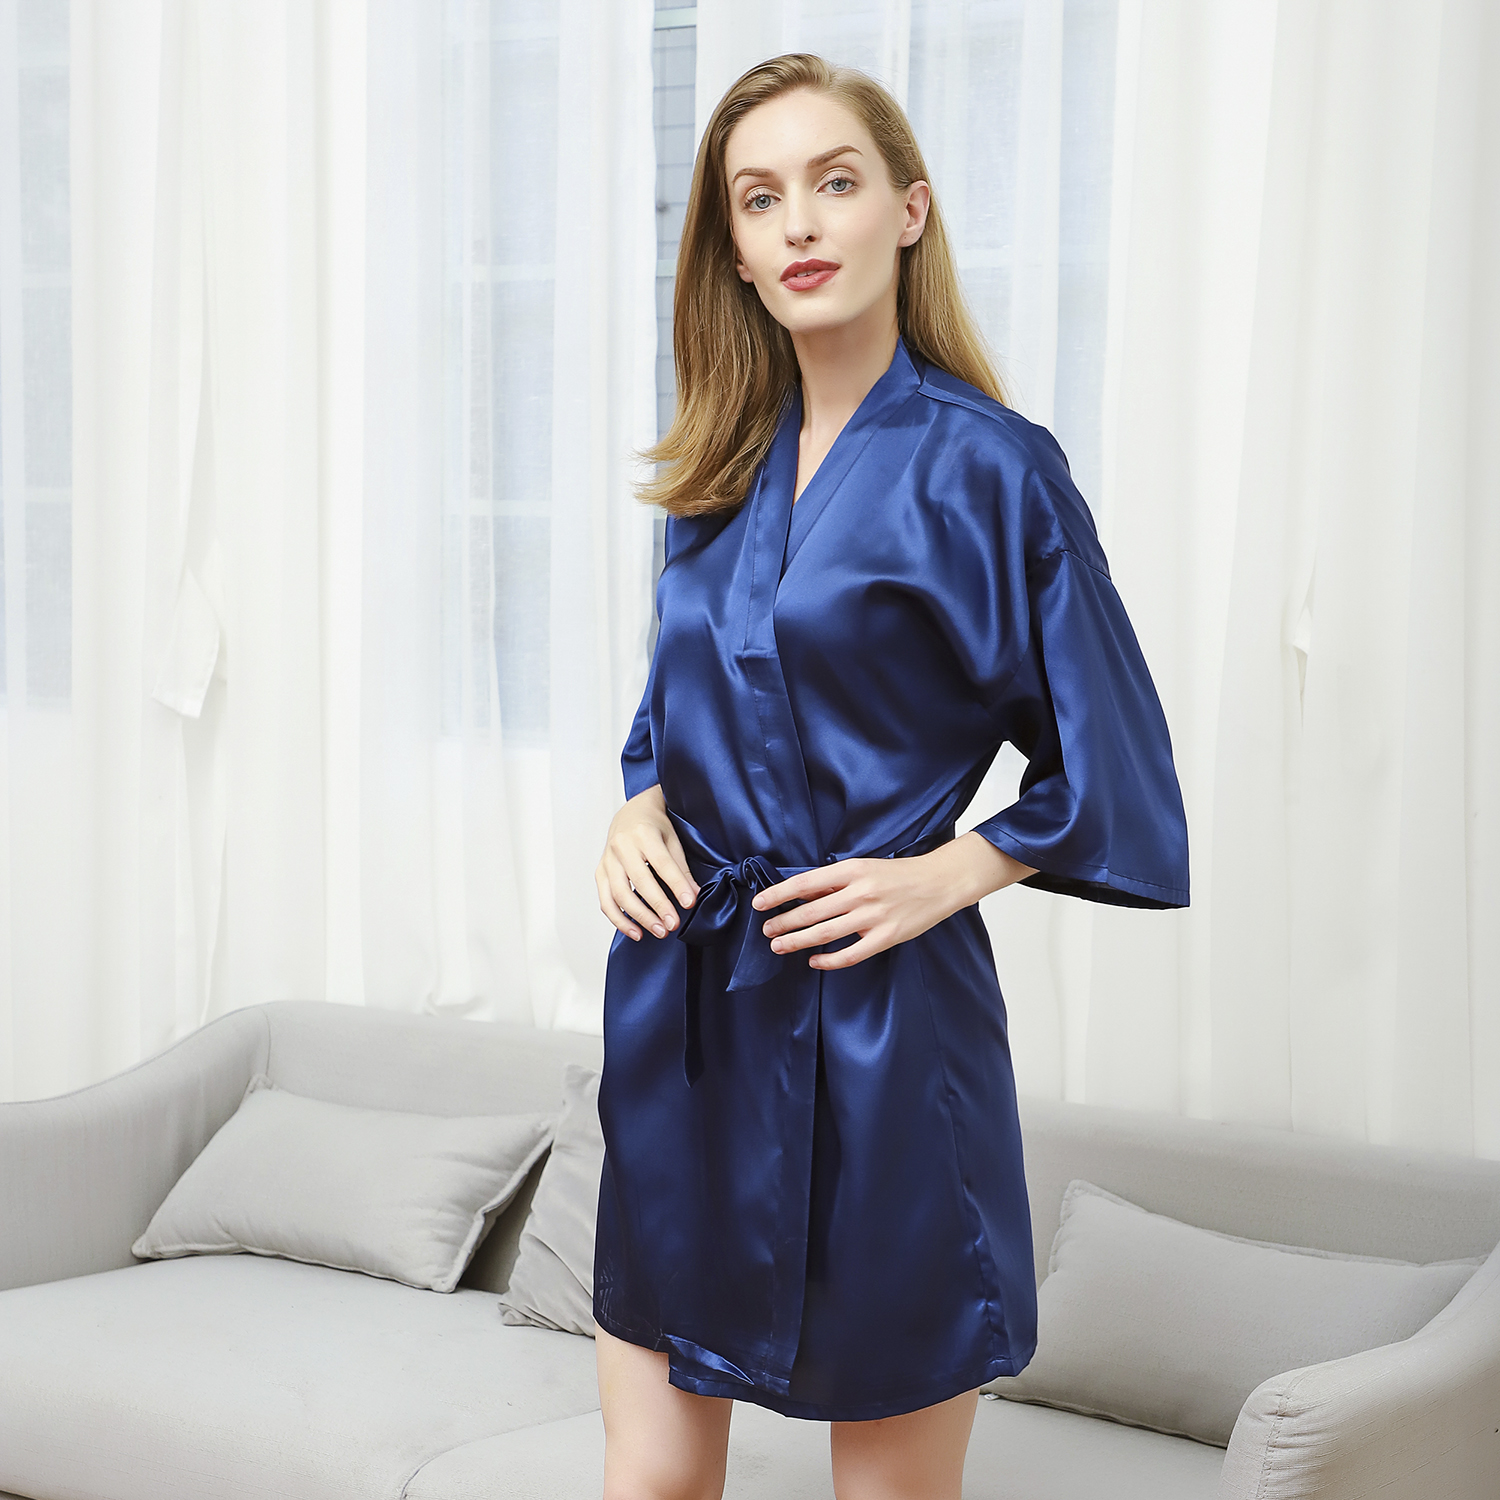 a9f3fd423c Navy Blue Lady Short Kimono Bathrobe Women Satin Sleepwear Solid Color Wedding  Bride Bridesmaid Robe Lounge